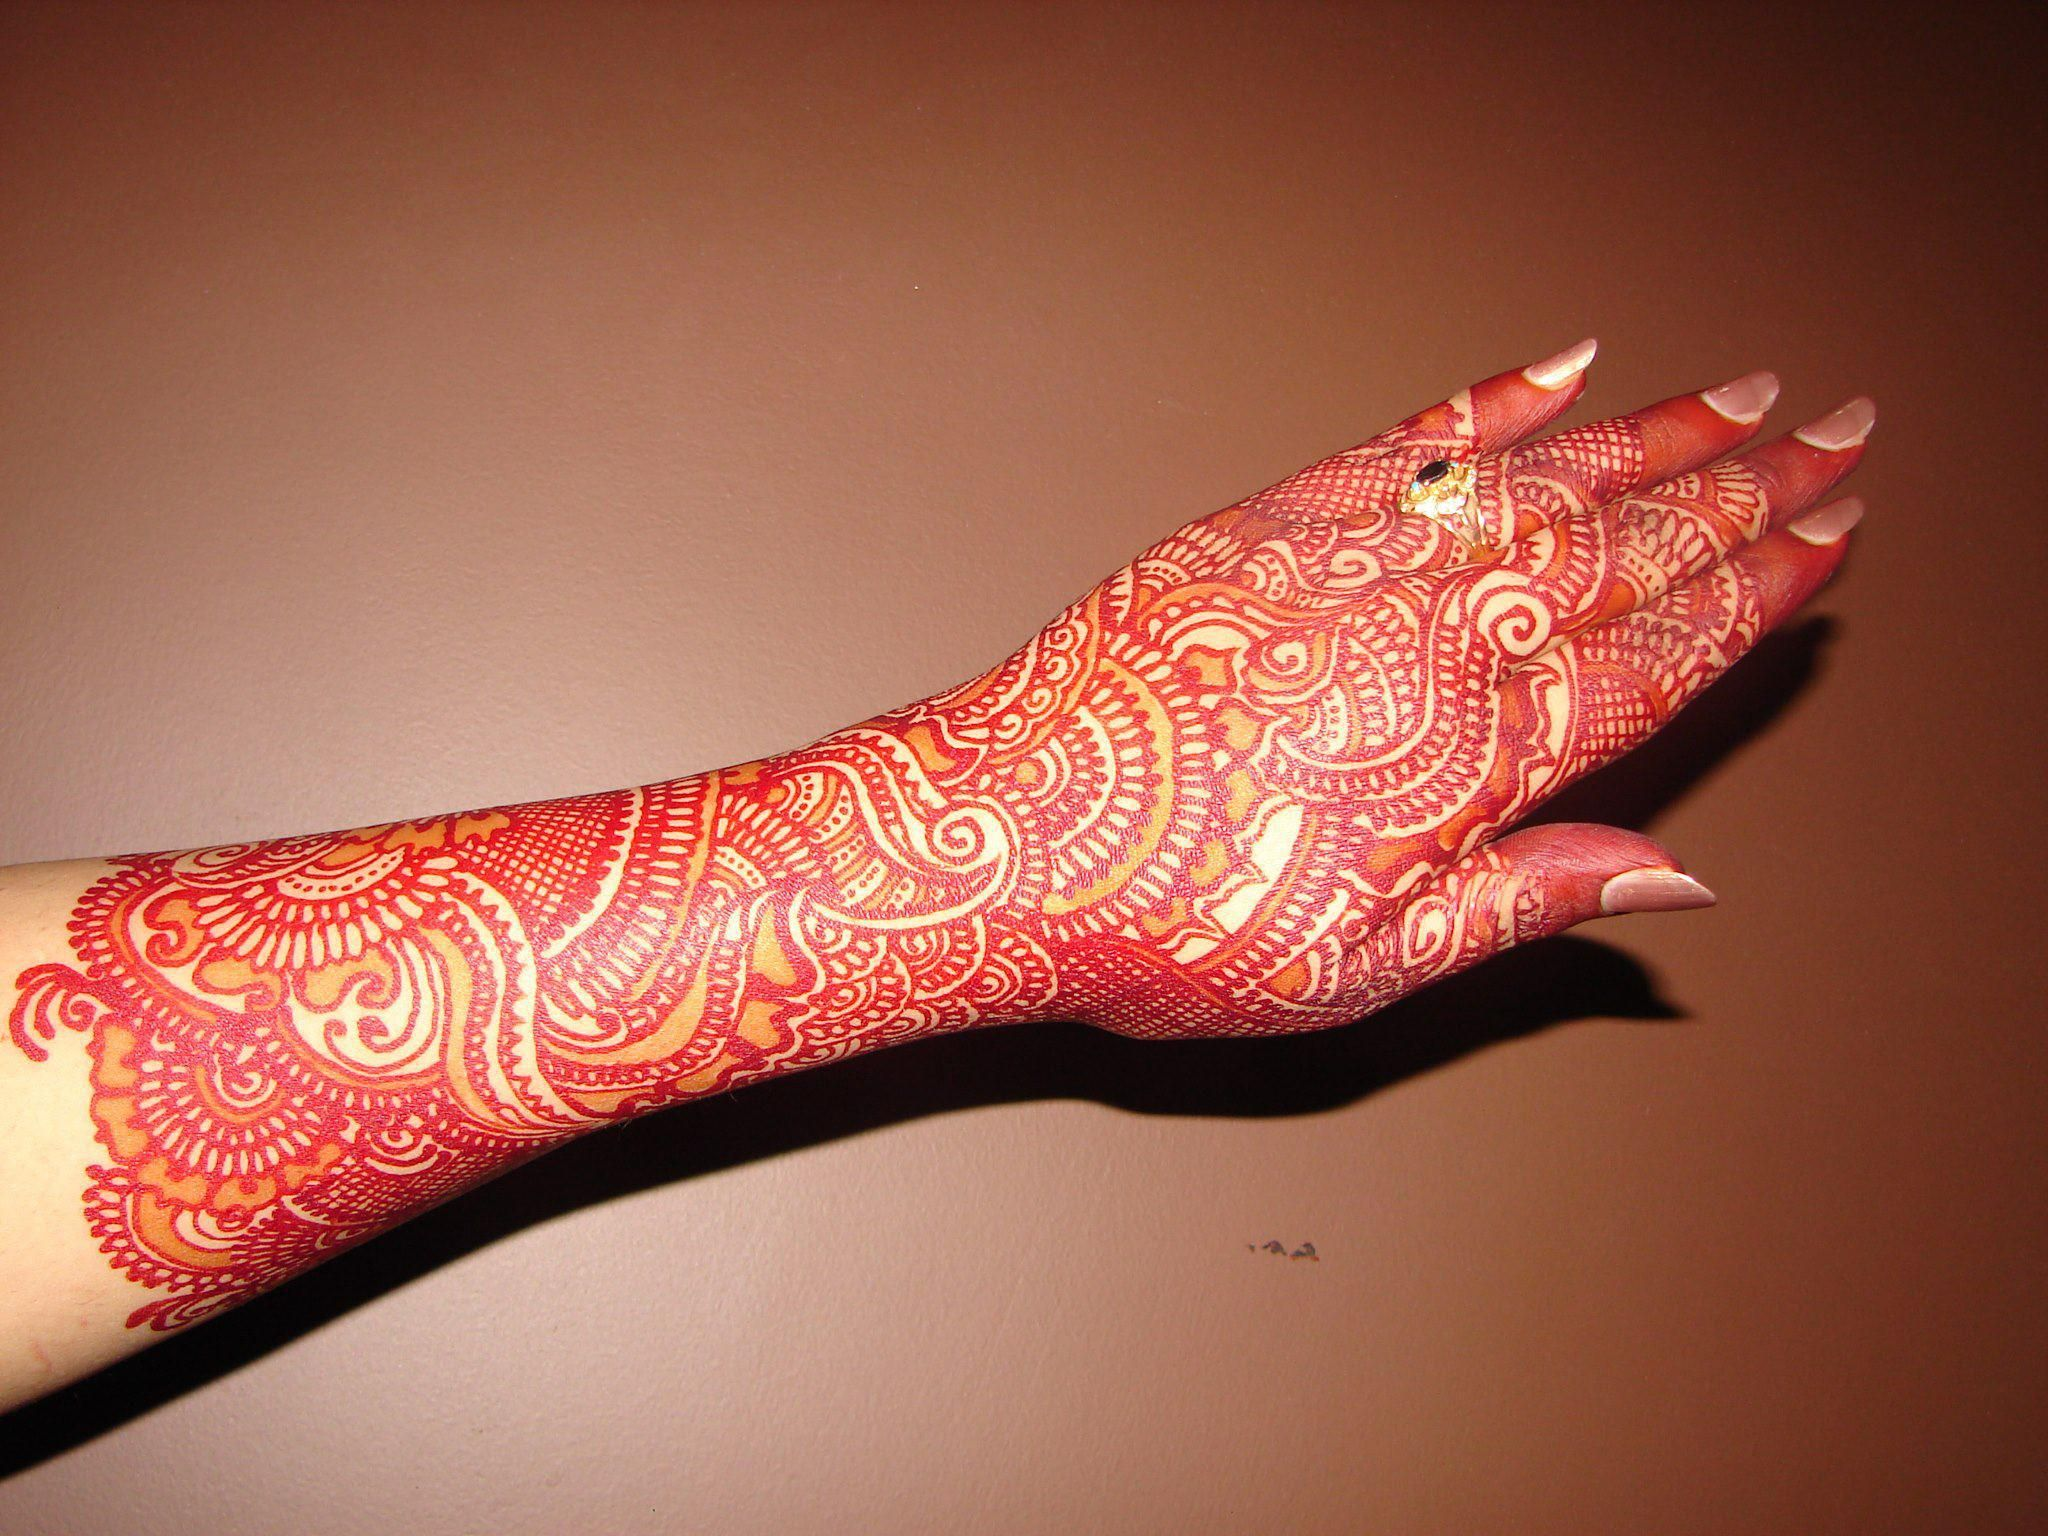 Attractive dulhan henna mehndi design for full hand - Mehndi Designs 2014 For Girls In Pakistan Asian Brides Mehndi Designs On Their Hands Arms And Feet On The Day Of The Mehndi Function Apply All Countries